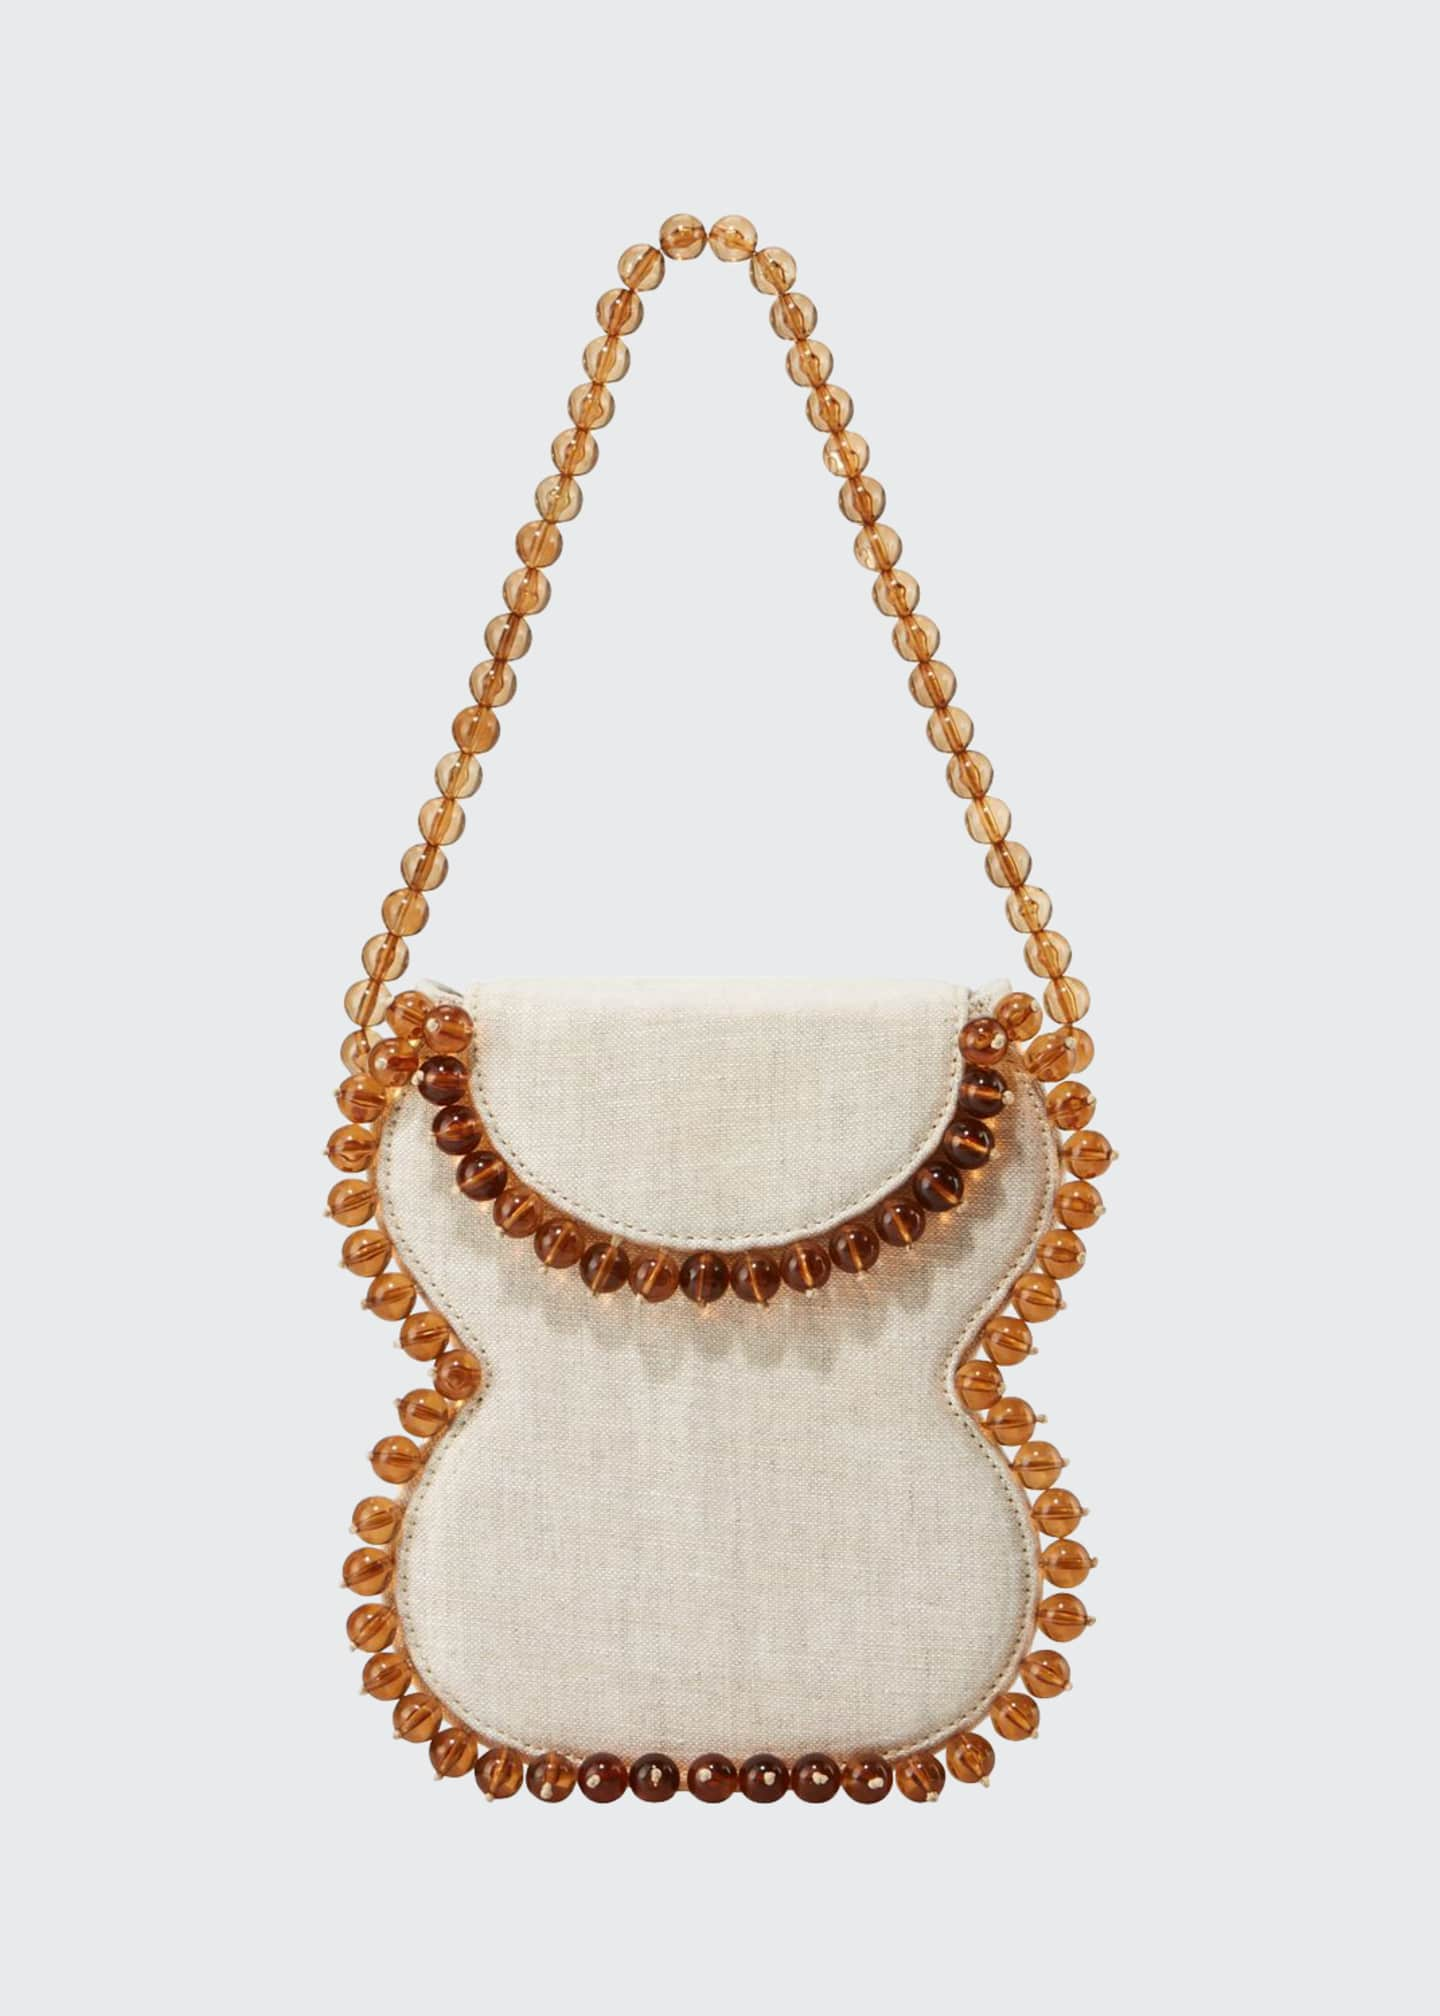 Image 1 of 3: Frida Beaded Linen Top-Handle Bag